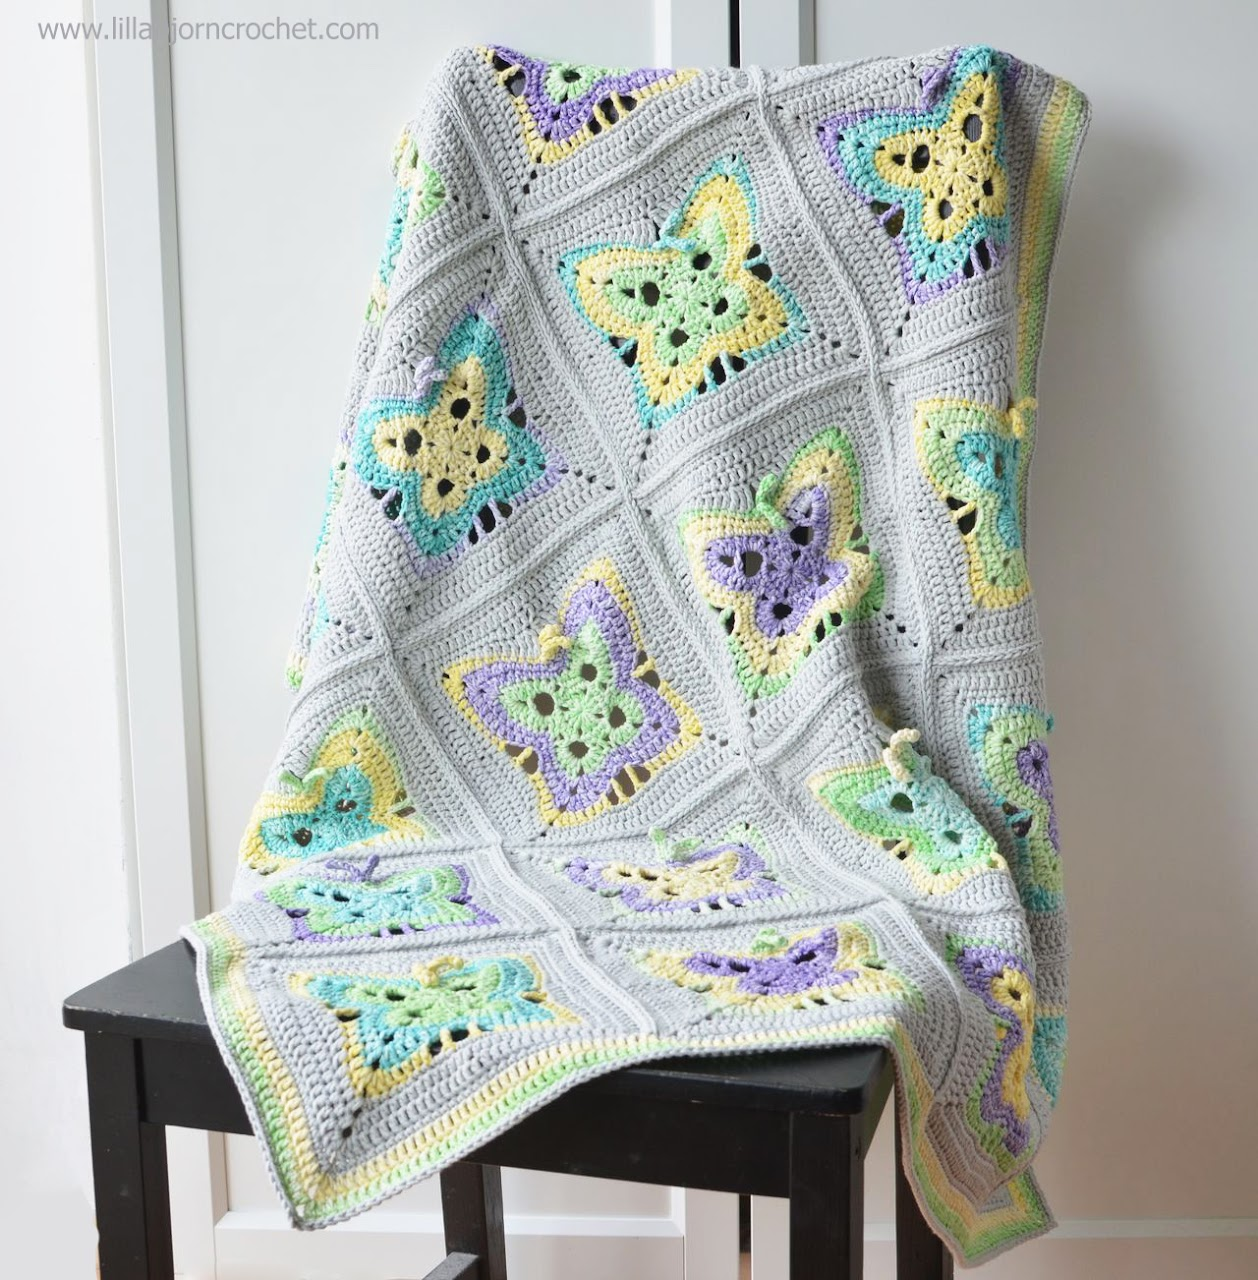 Moonlight Butterfly baby blanket. Crochet pattern by Lilla Bjorn Crochet